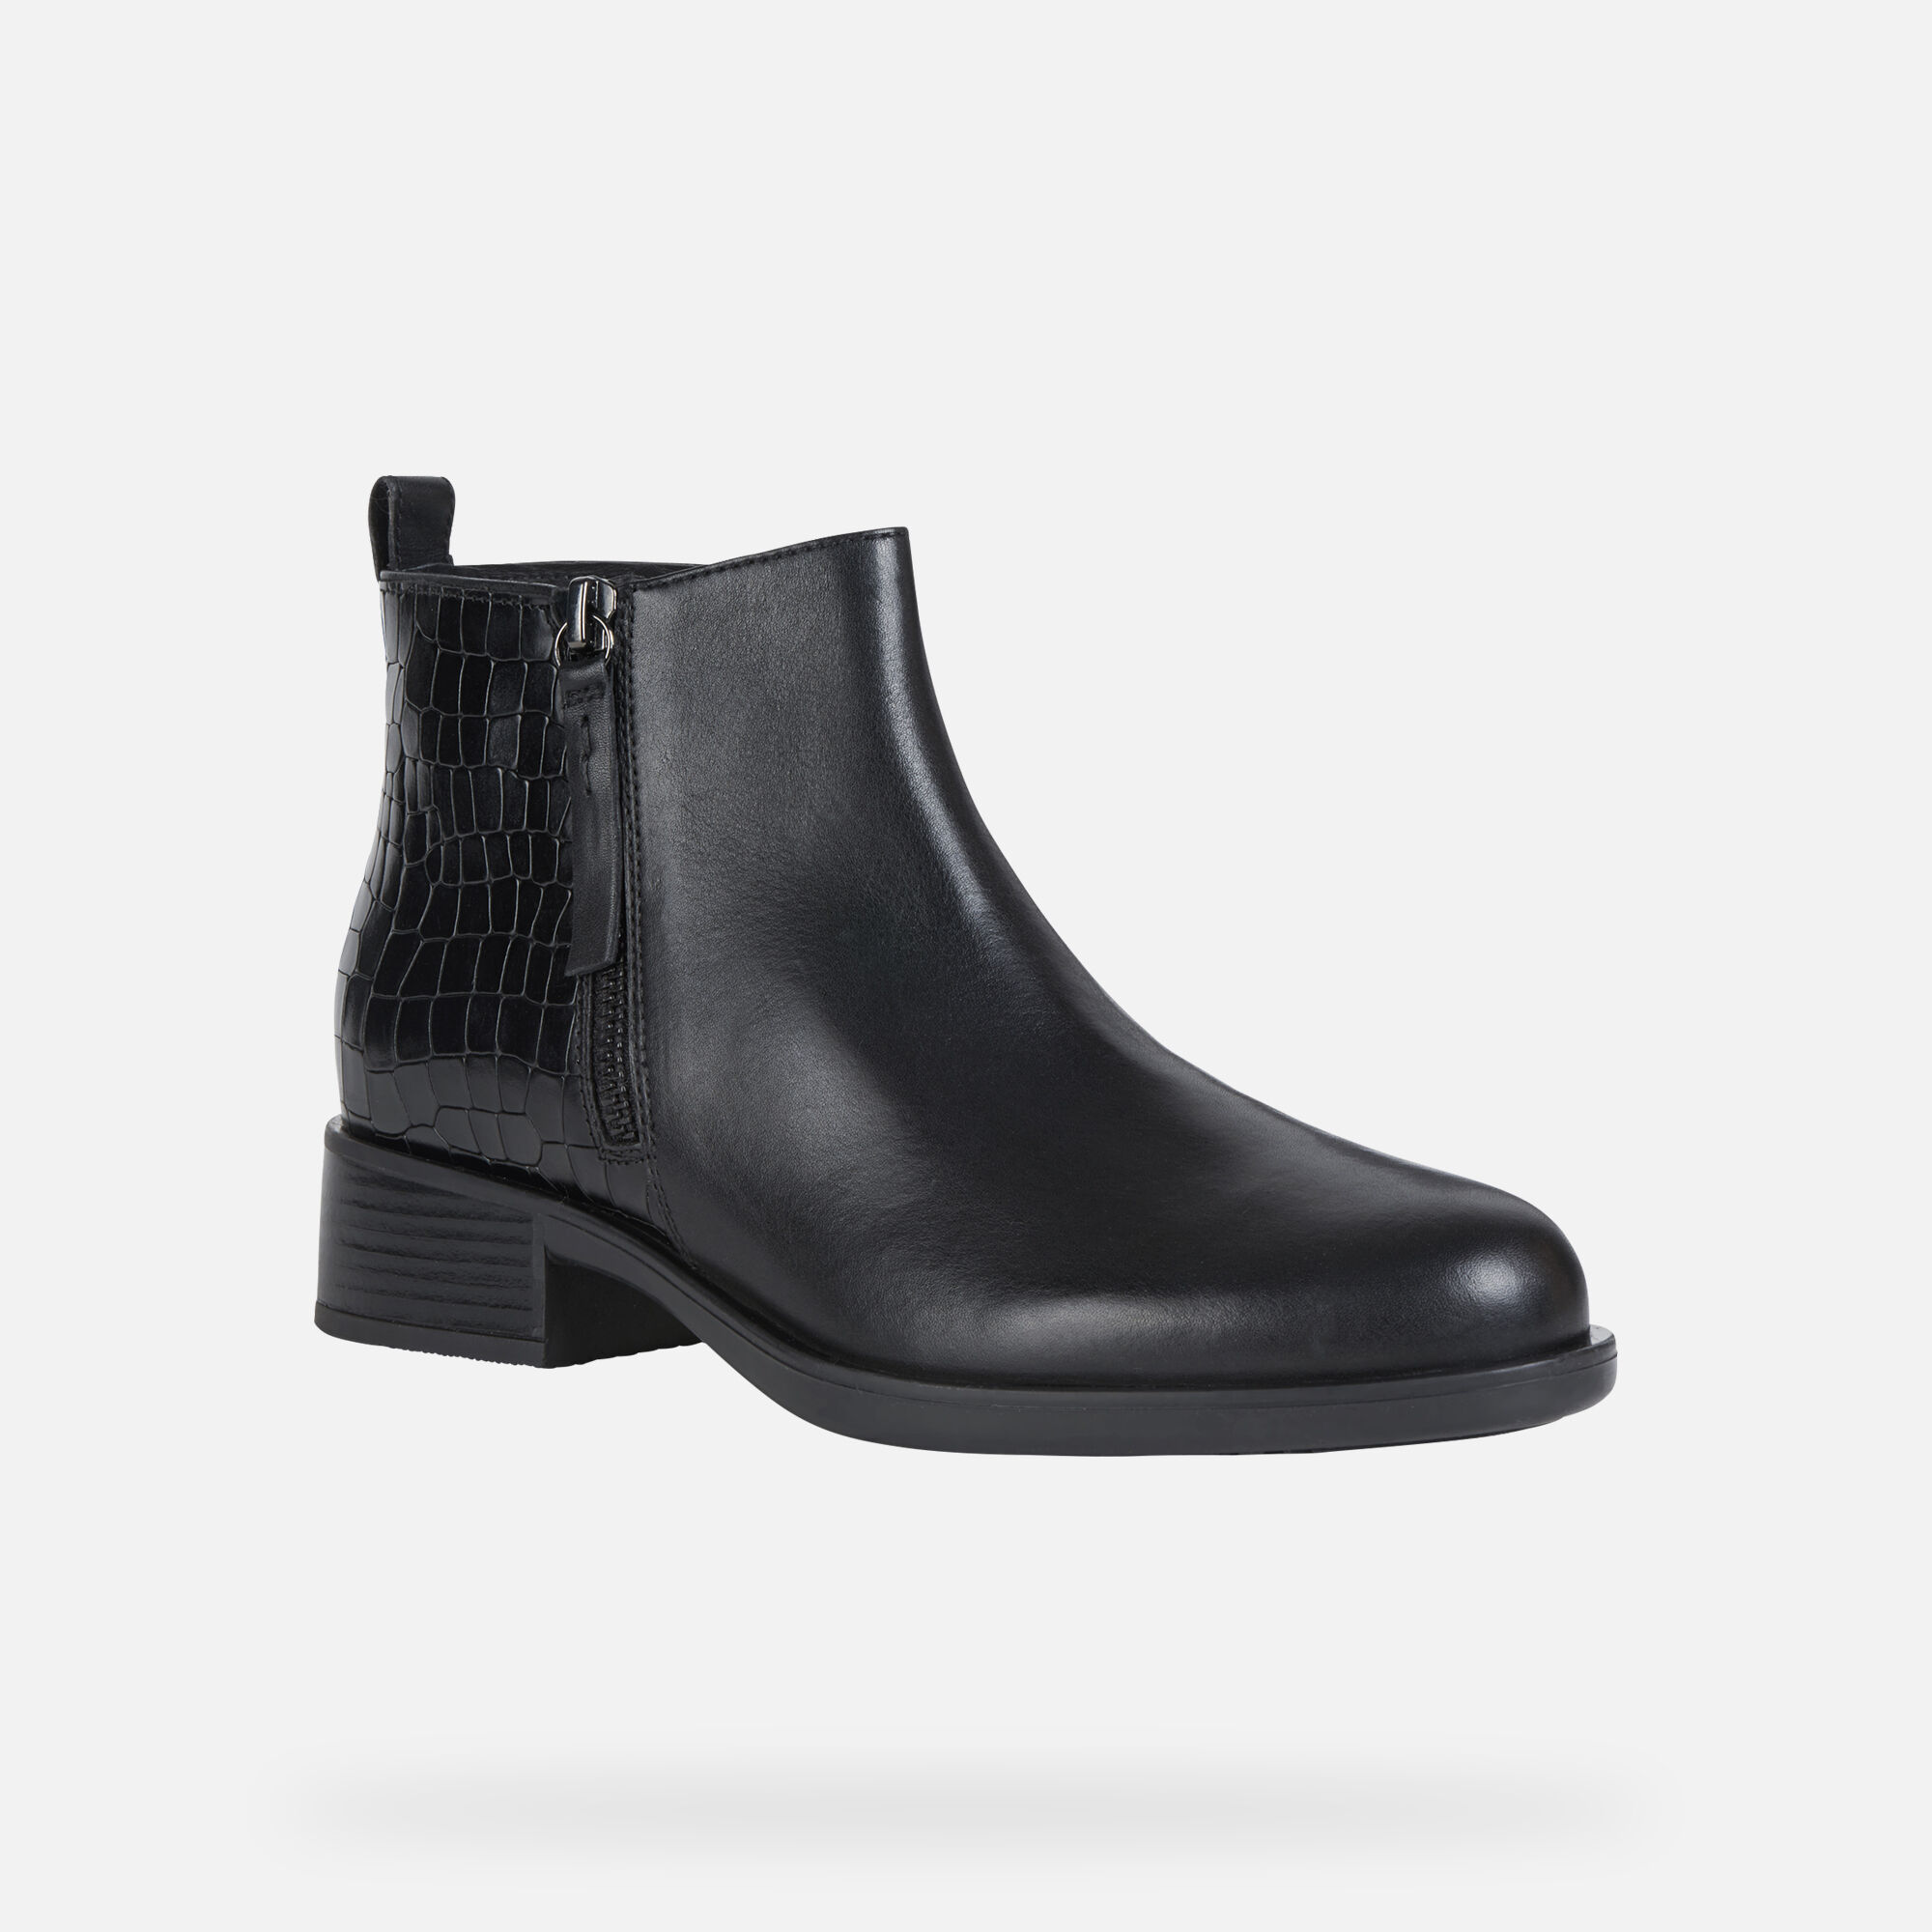 Geox RESIA Ankle boots black